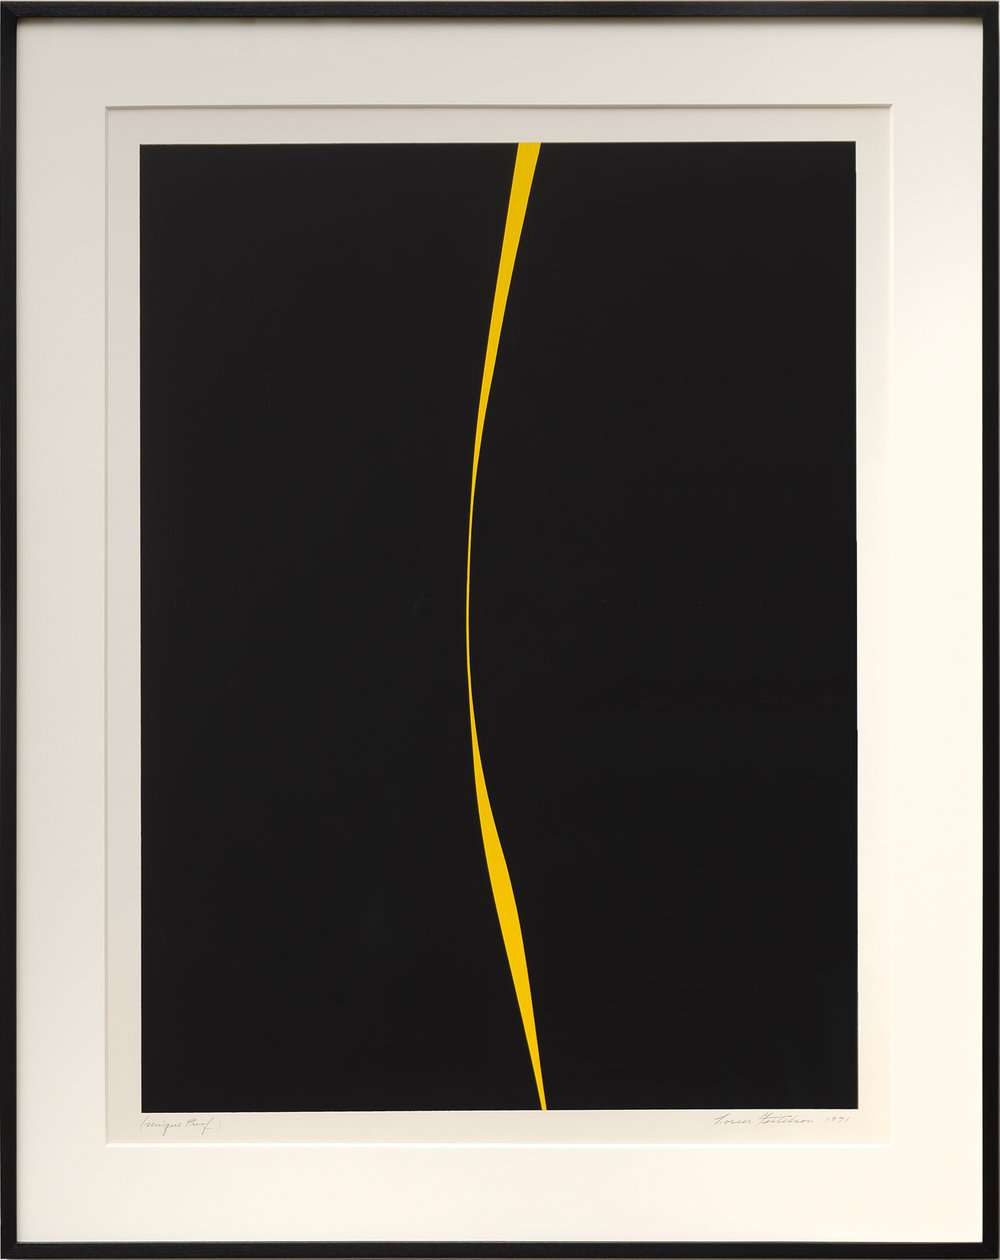 Lorser Feitelson (1898-1978)   Untitled (Black with Yellow Line) , 1971 serigraph  36 x 28 inches; 91.4 x 71.1 centimeters